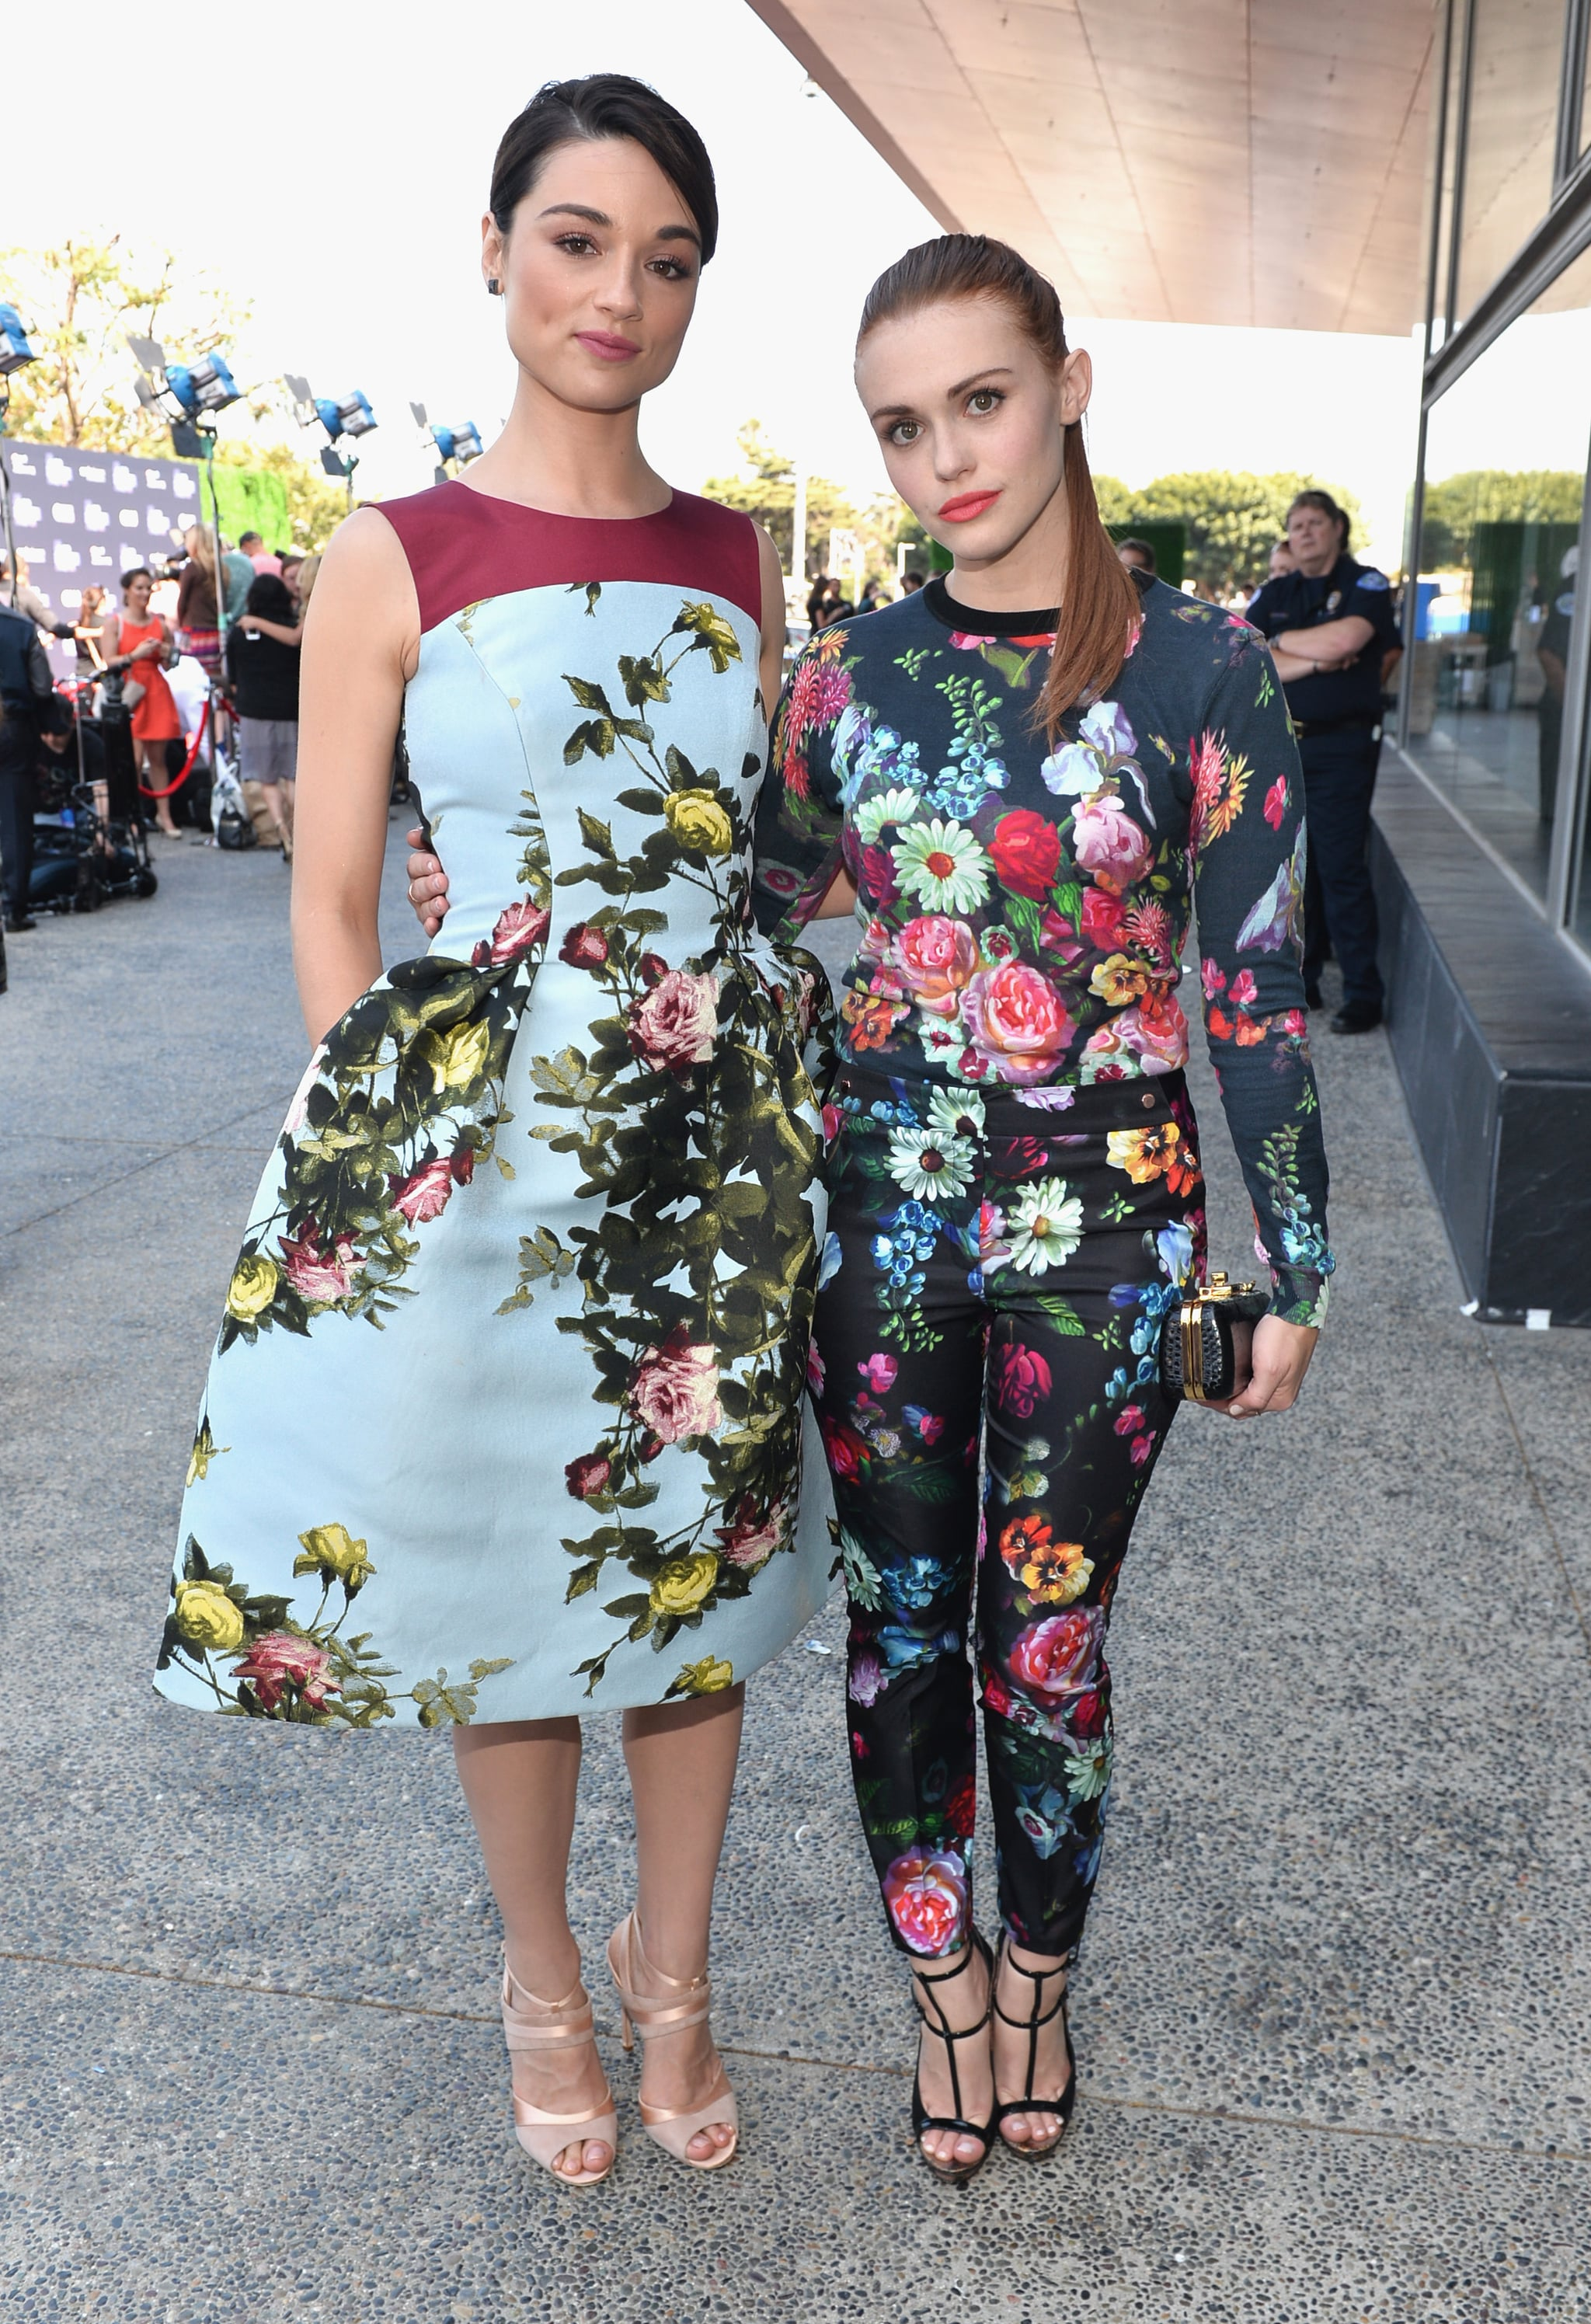 Crystal Reed (in Carolina Herrera) and Holland Roden (in Ted Baker) were standouts at the Young Hollywood Awards in florals.